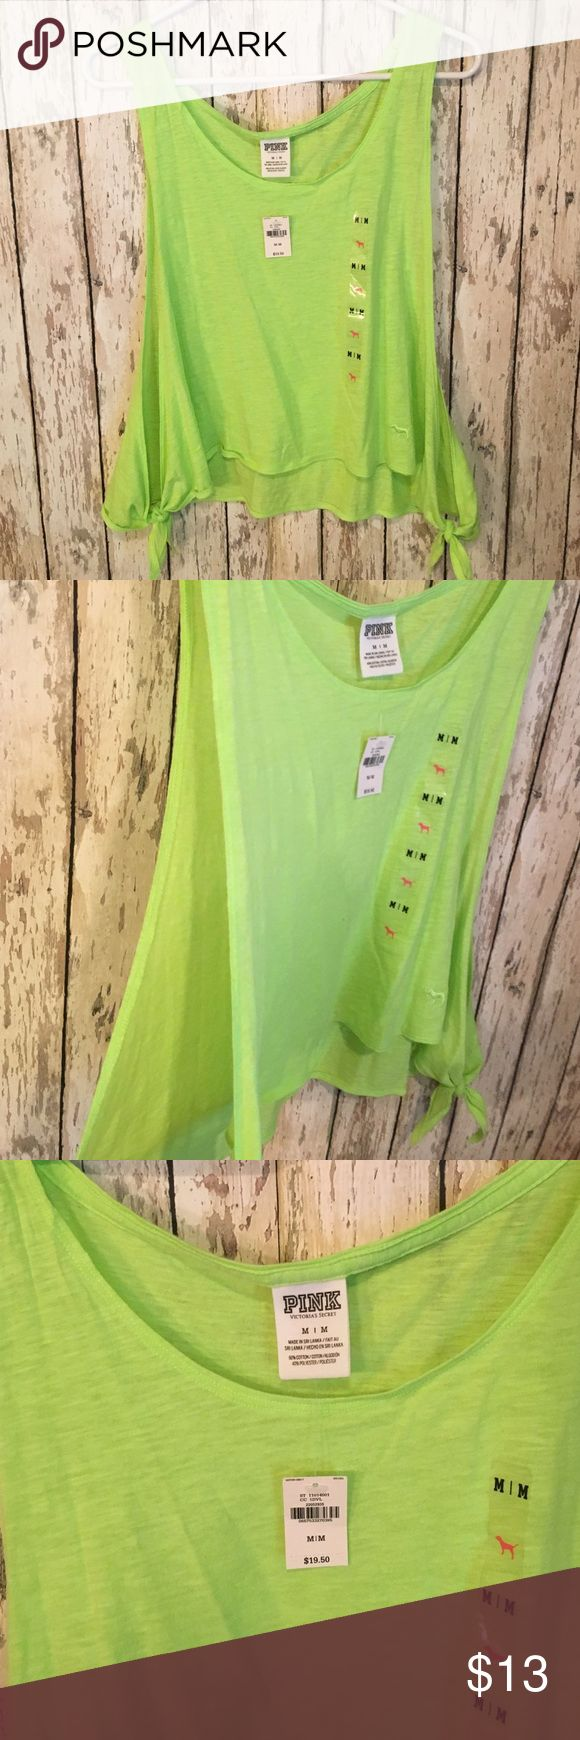 LIME GREEN VS OPEN SIDES TANK TOP Very cute summer shirt, Lime green, BRAND NEW WITH TAGS, SIZE M, VICTORIA SECRET BRAND, ties at bottom of slits on sides PINK Victoria's Secret Tops Tank Tops